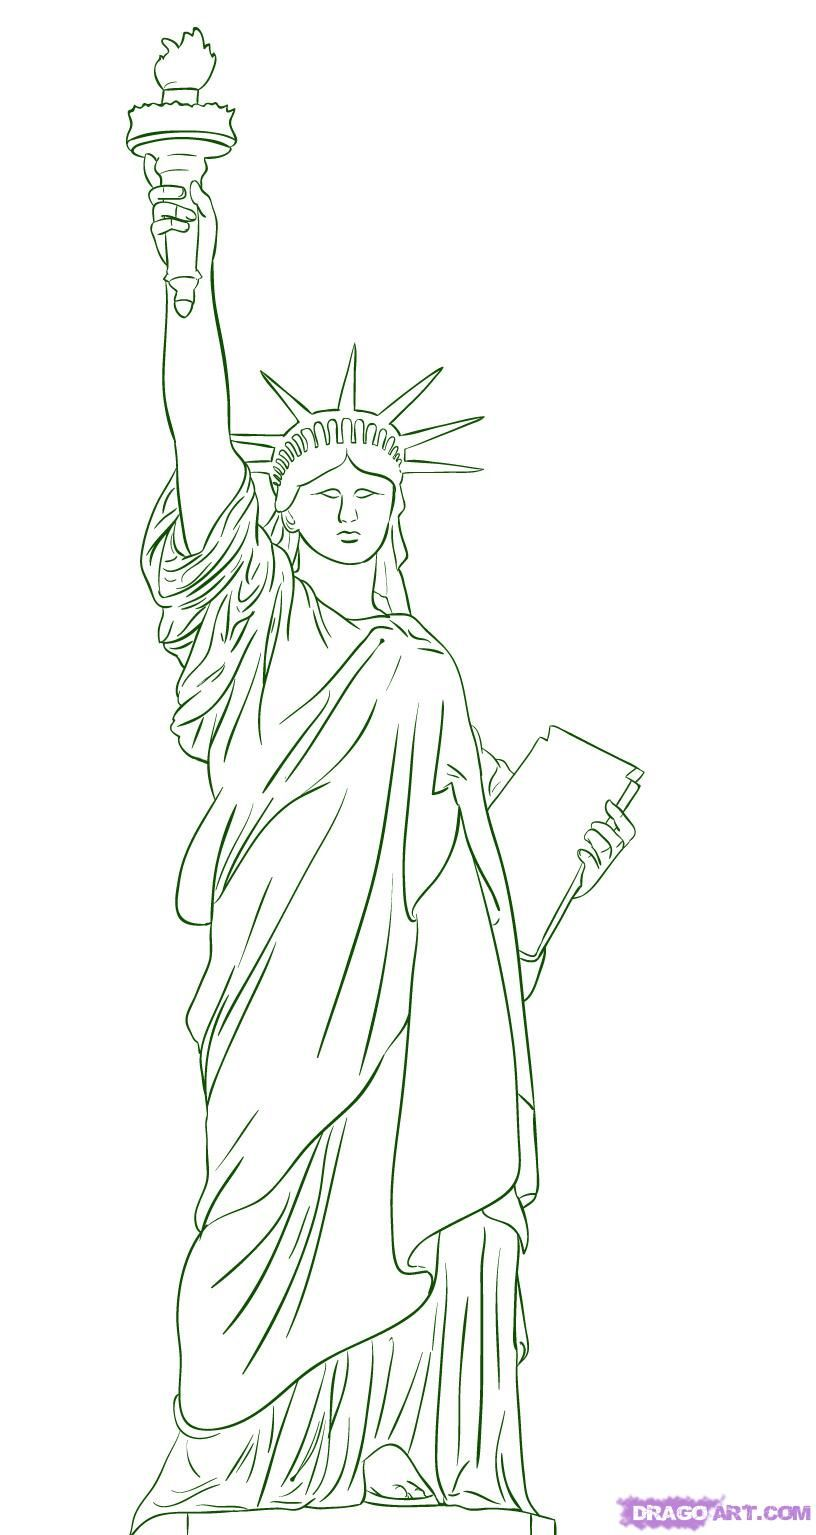 How to draw the Statue of Liberty on paper with a pencil step by step